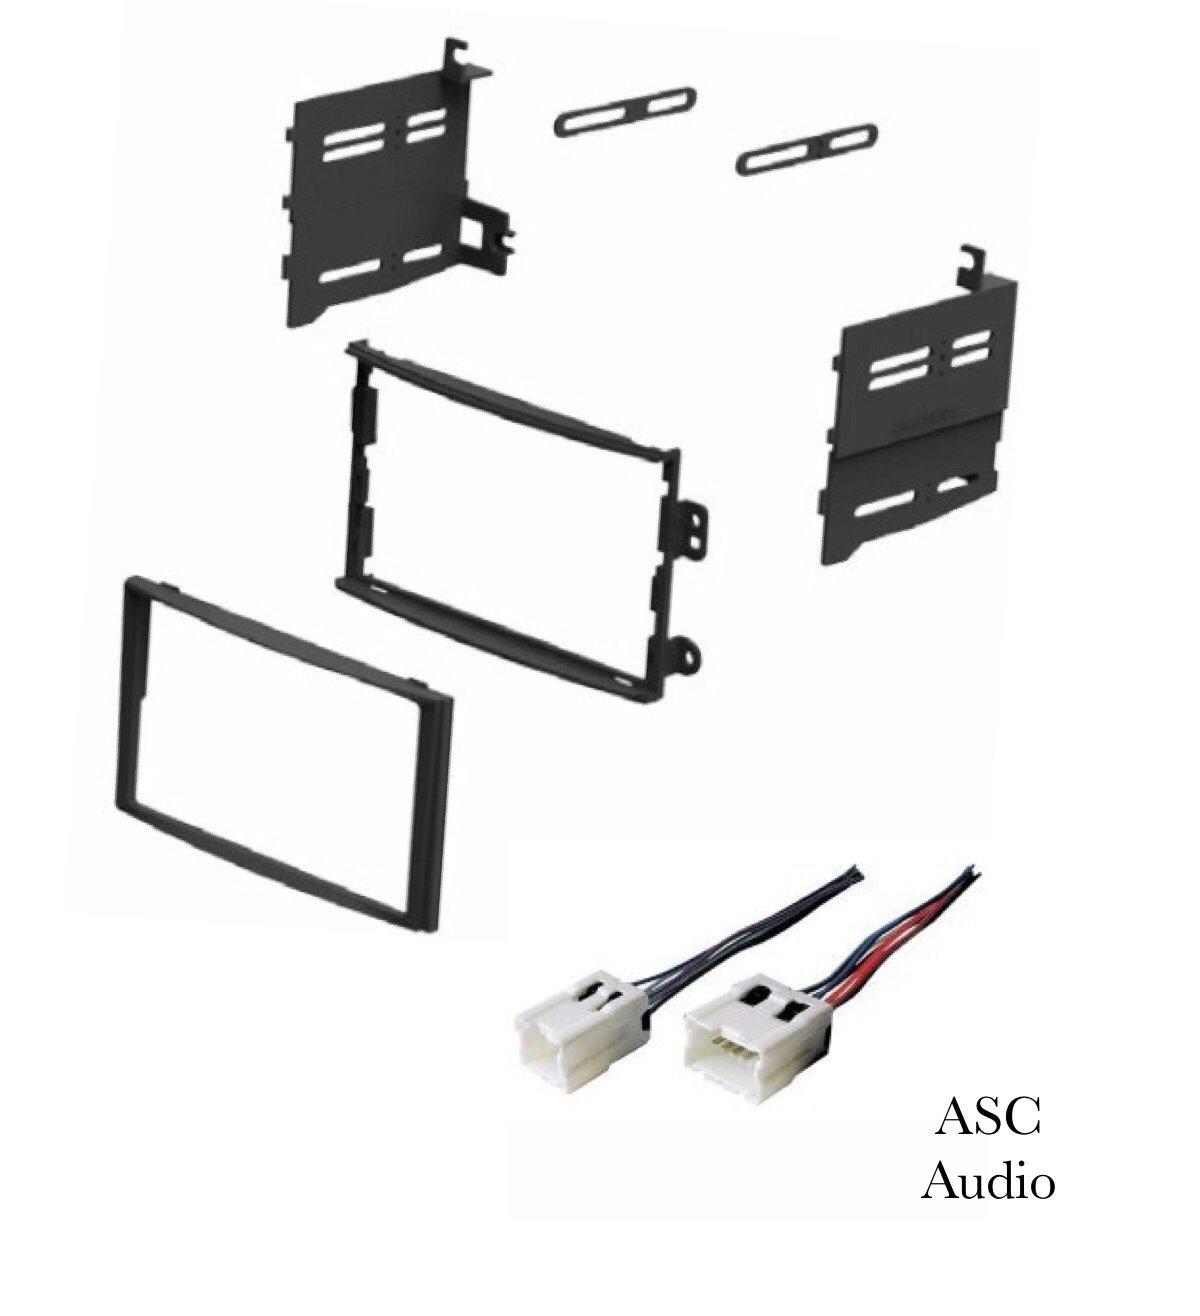 ASC Car Stereo Dash Install Kit and Wire Harness for Installing a Double Din Aftermarket Radio for 2003 2004 2005 Nissan 350z